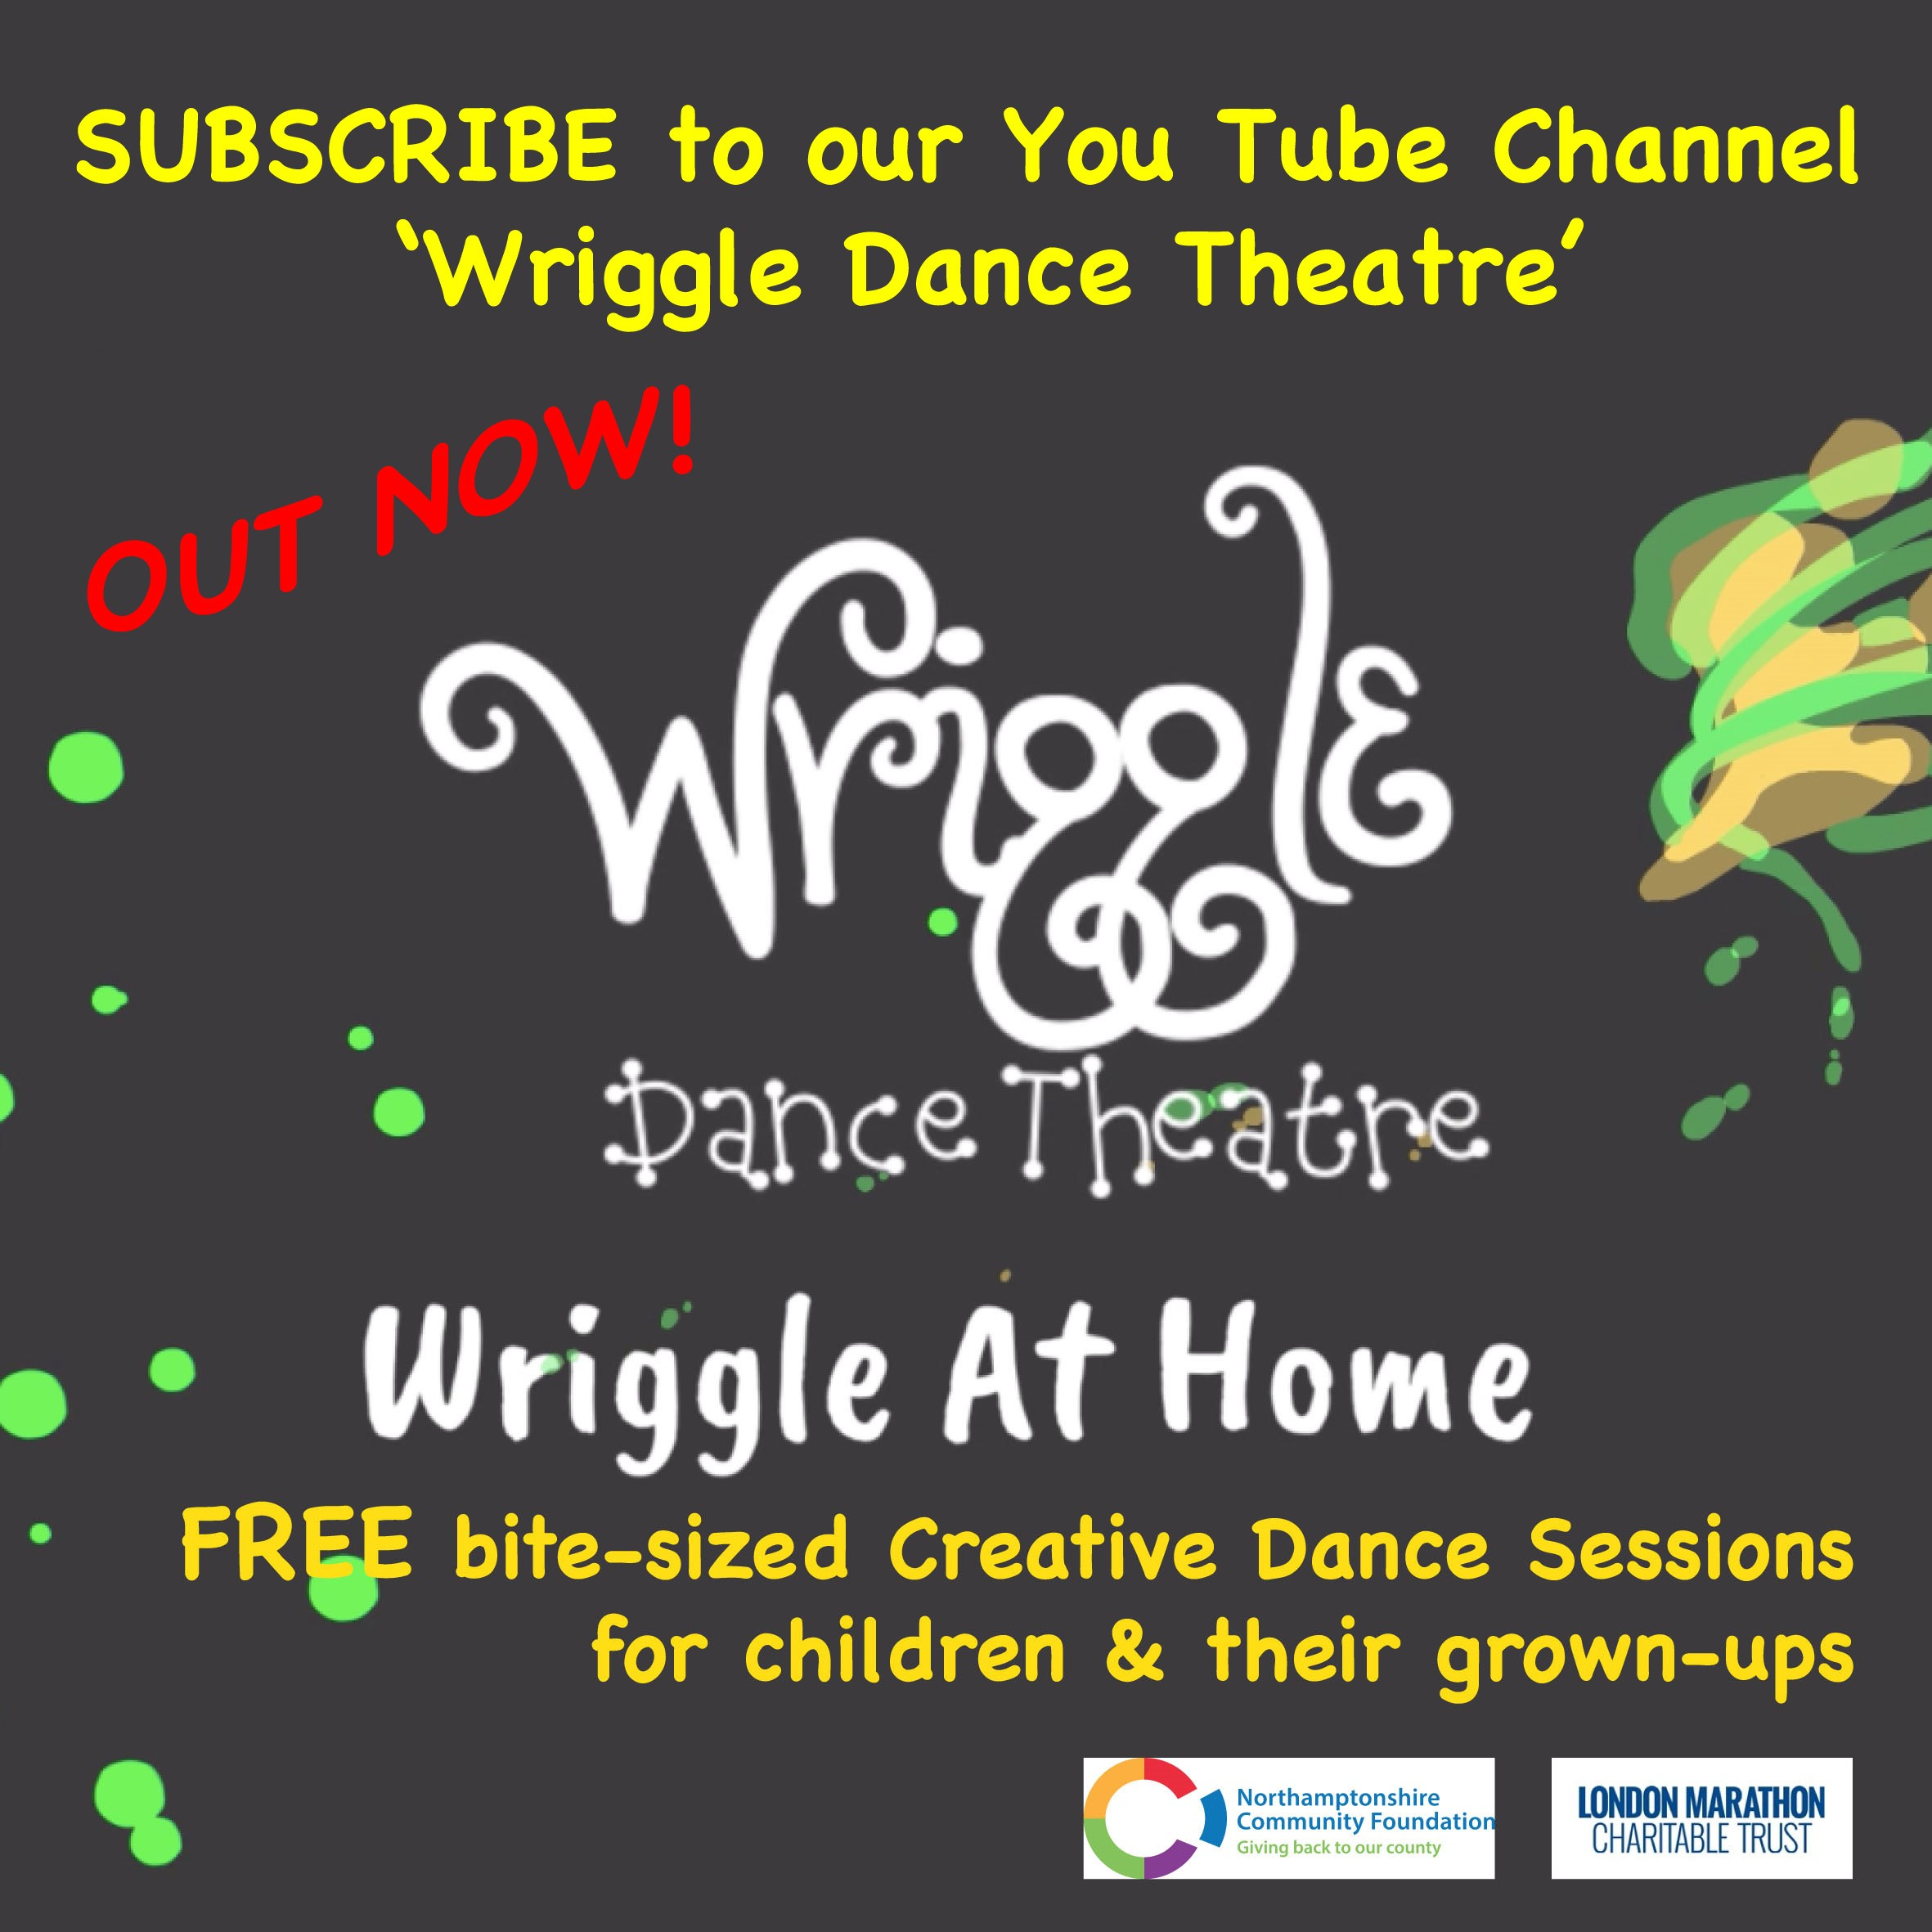 Wriggle At Home, bite sized creative dance sessions